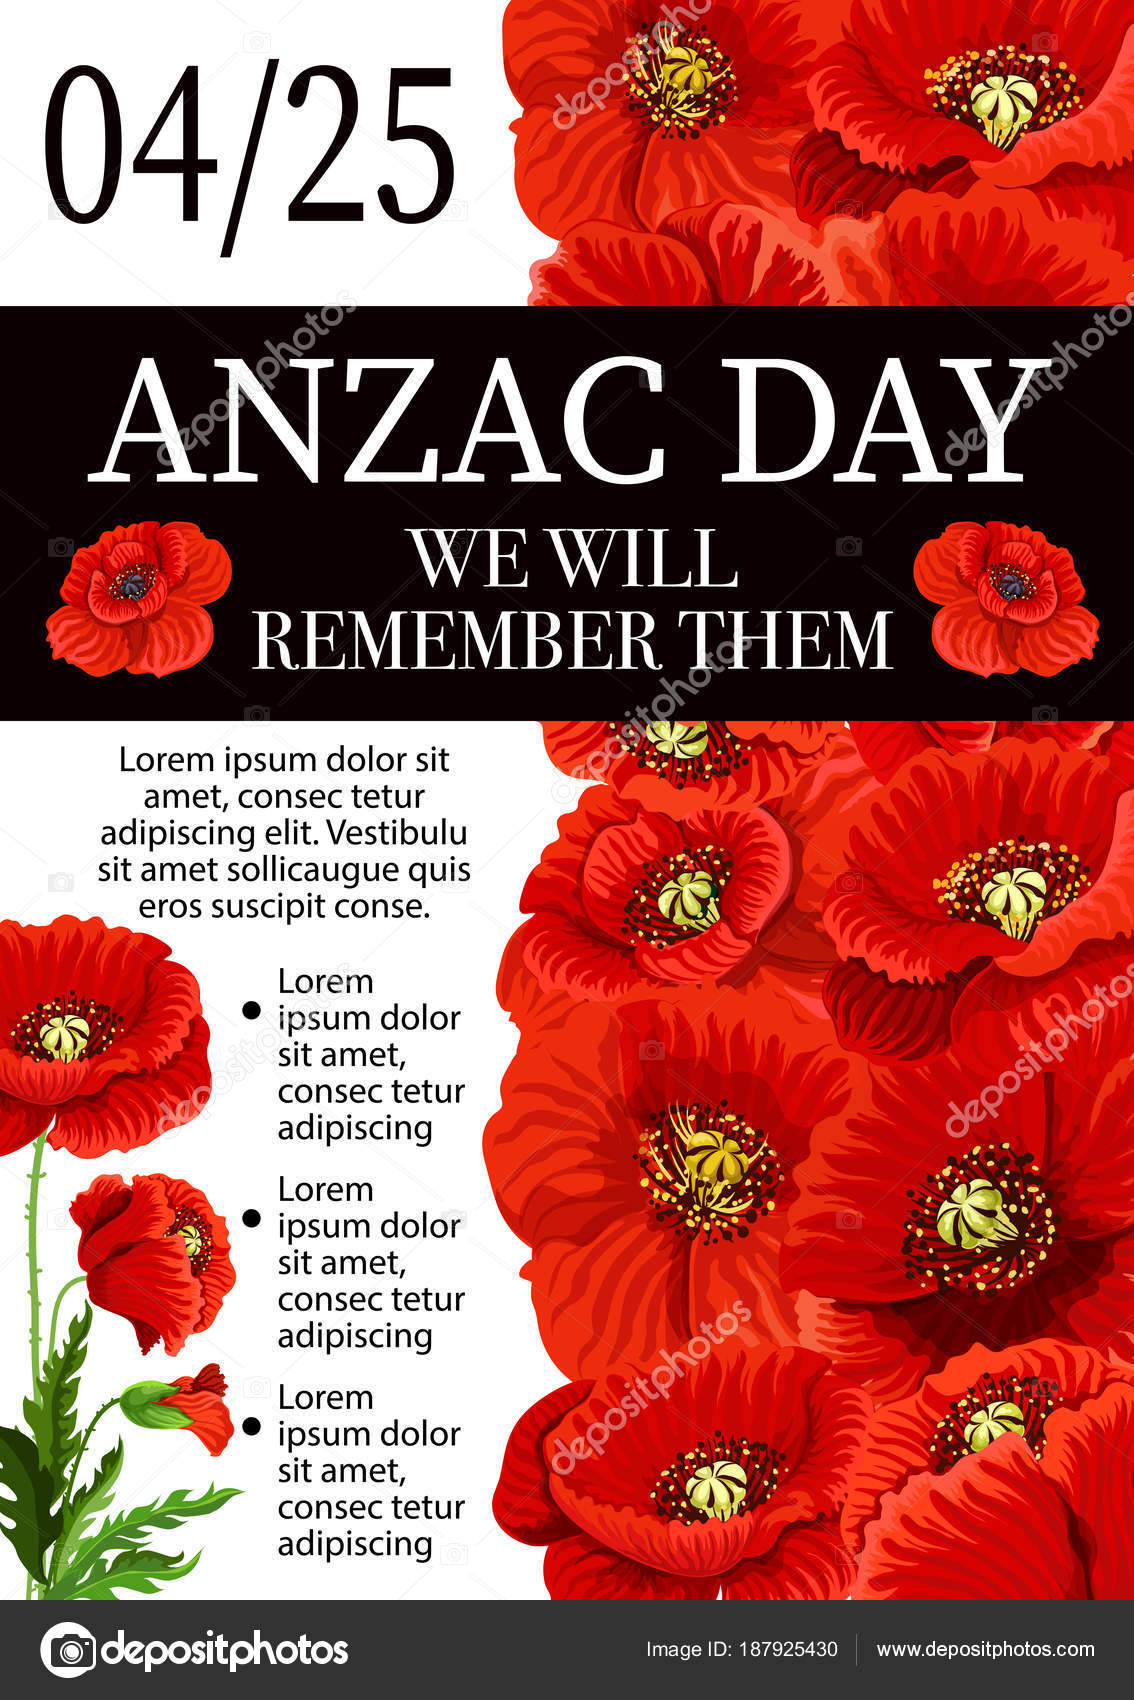 Anzac Day Lest We Forget Remembrance Vector Poster Stock Vector